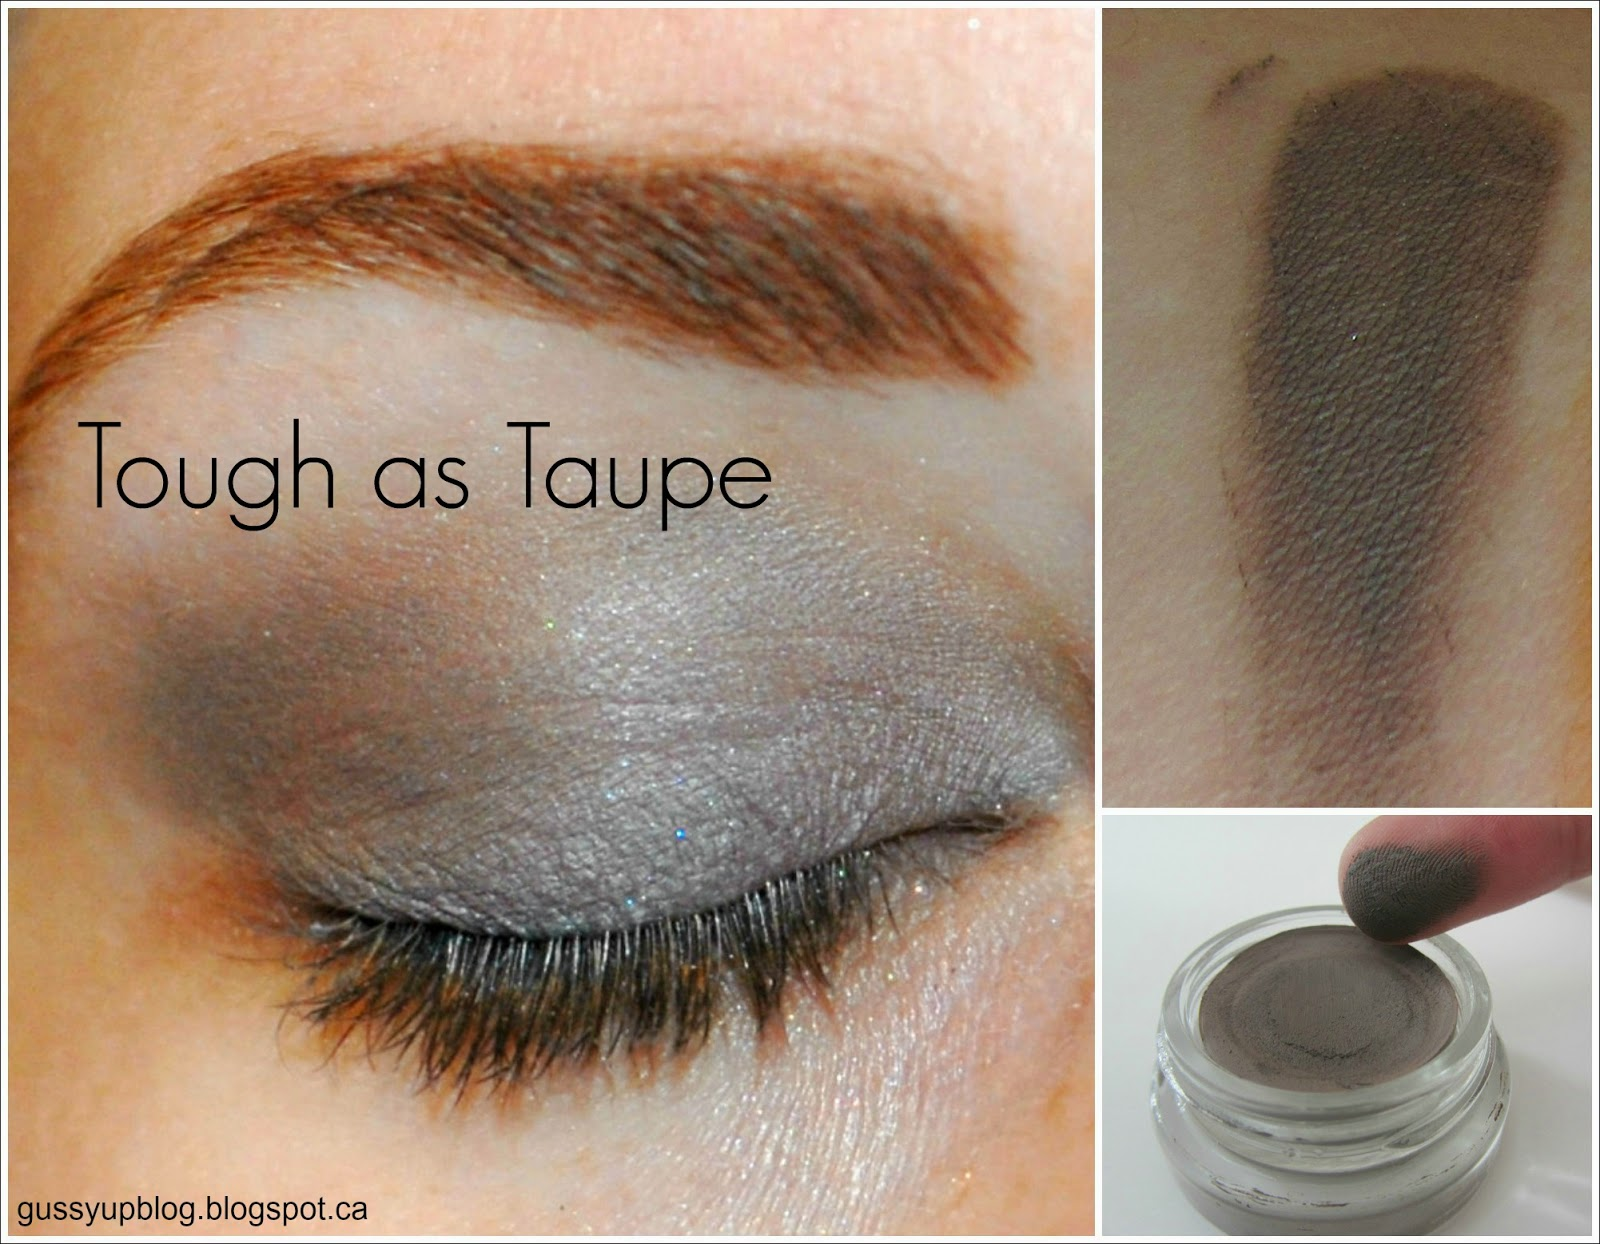 Maybelline Color Tattoo 24 Hour Eyeshadow, Tough as Taupe, Review and Swatches